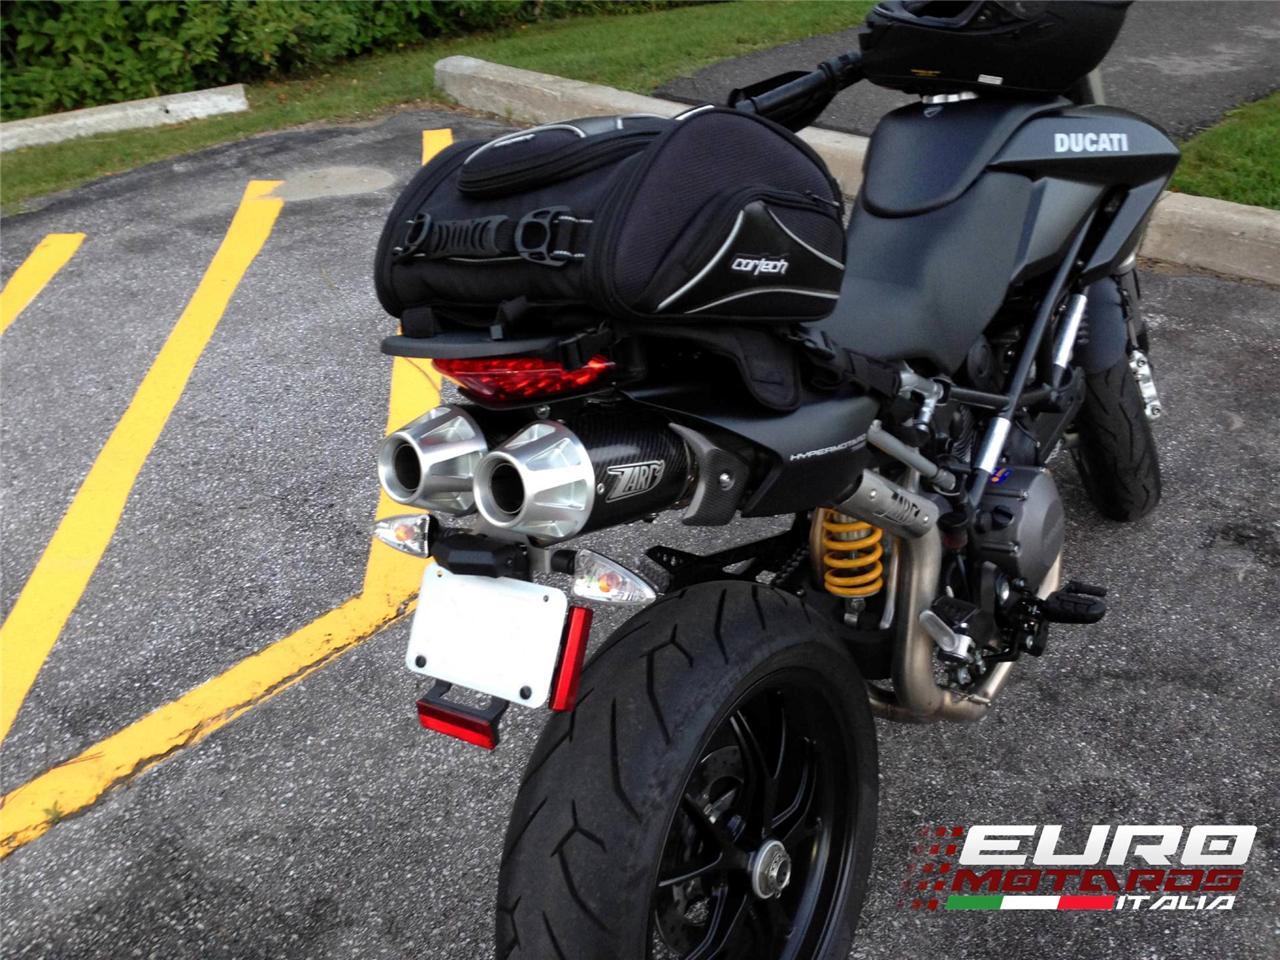 ducati hypermotard 796 1100 evo zard exhaust top gun carbon silencers mufflers ebay. Black Bedroom Furniture Sets. Home Design Ideas